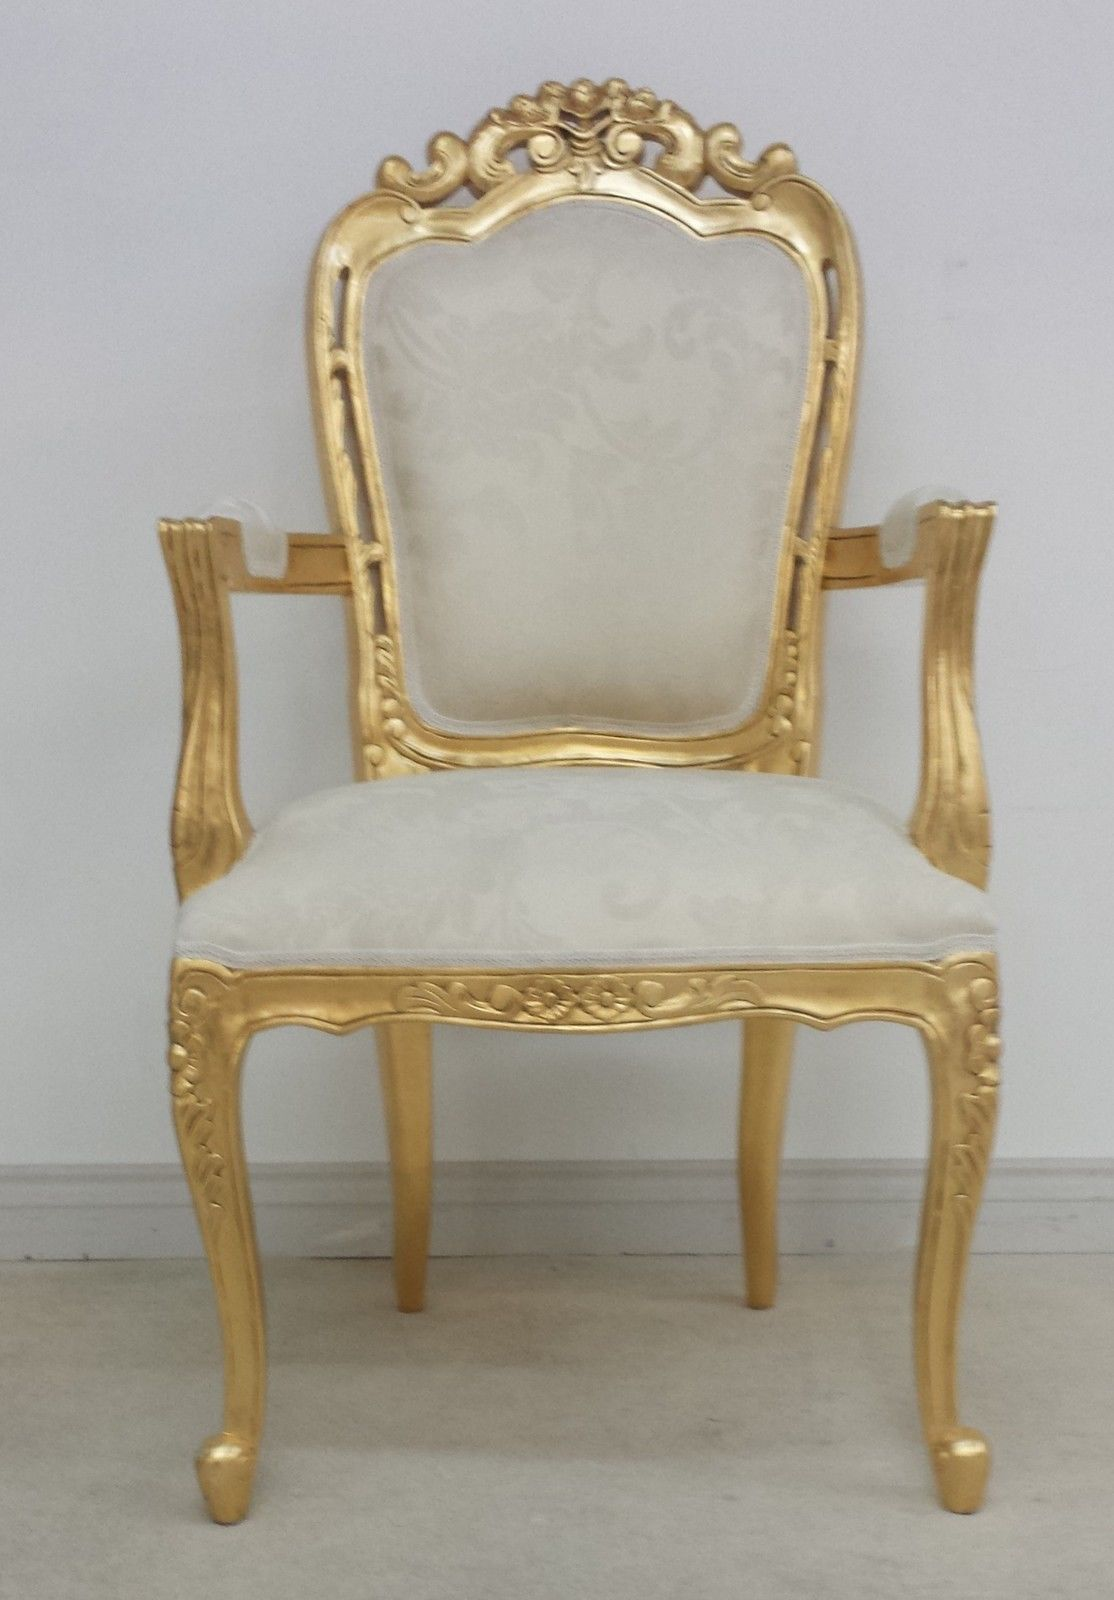 Franciscan Chair In Gilded Gold And Ivory Cream Dining Or